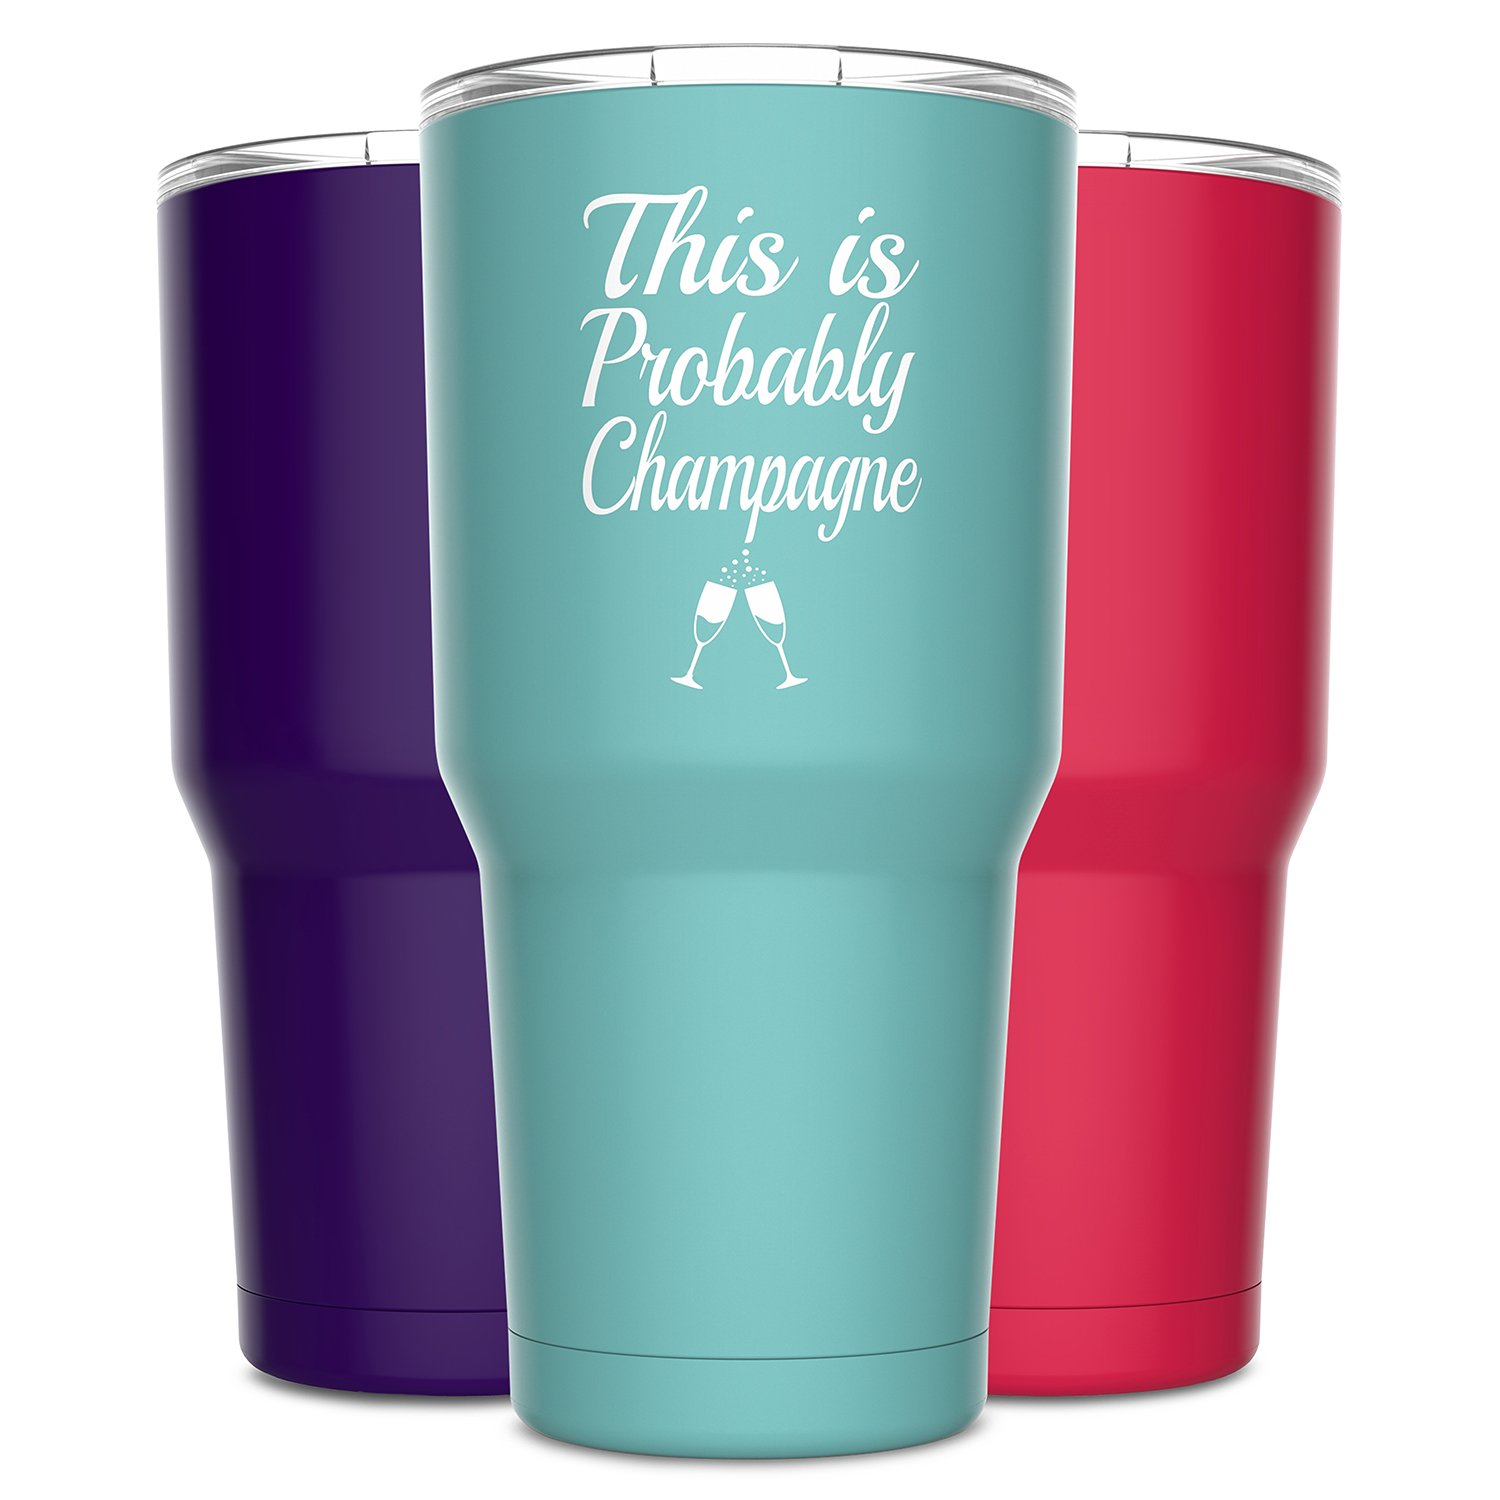 This is Probably Champagne Stainless Steel Funny Tumbler with Lid